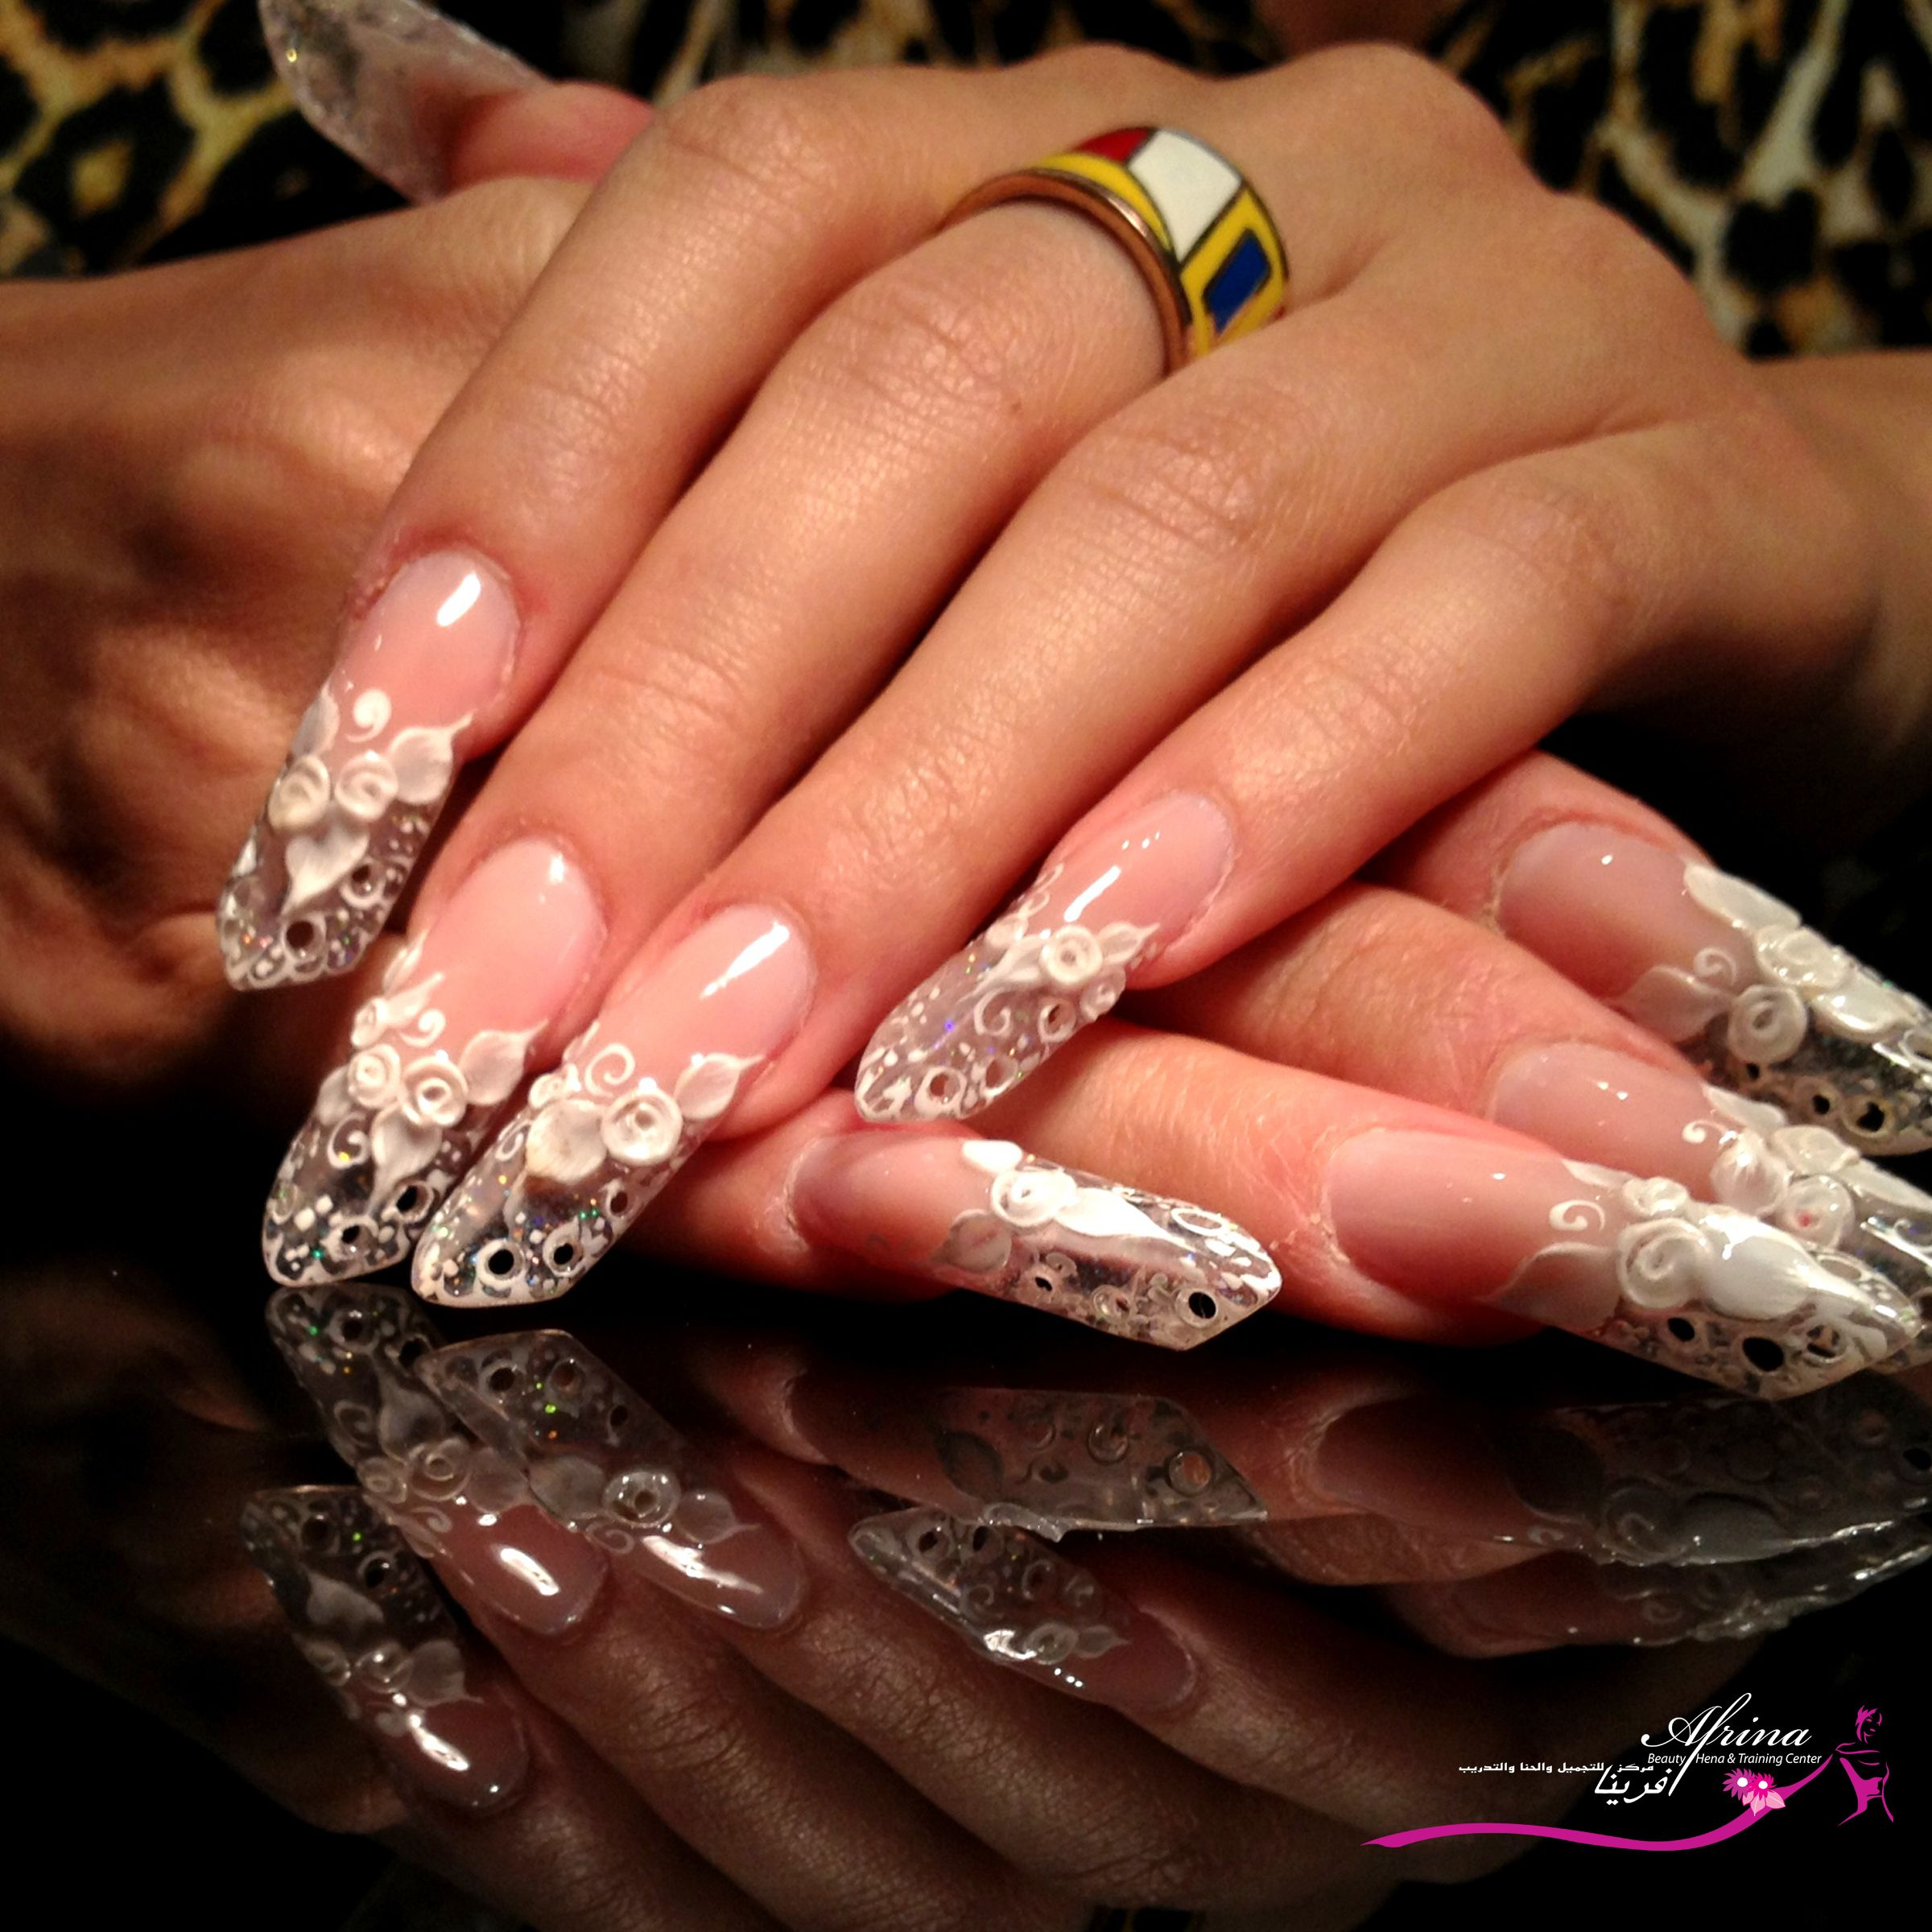 Be classy, be artistic check out our nails designs! check and book for nail designs in our branch!   #AfrinaBeauty #beautysalonUAE #Mirdiff #AfrinaBeautySalon #Dubai #Sharjah #nail #nailart #naildesign